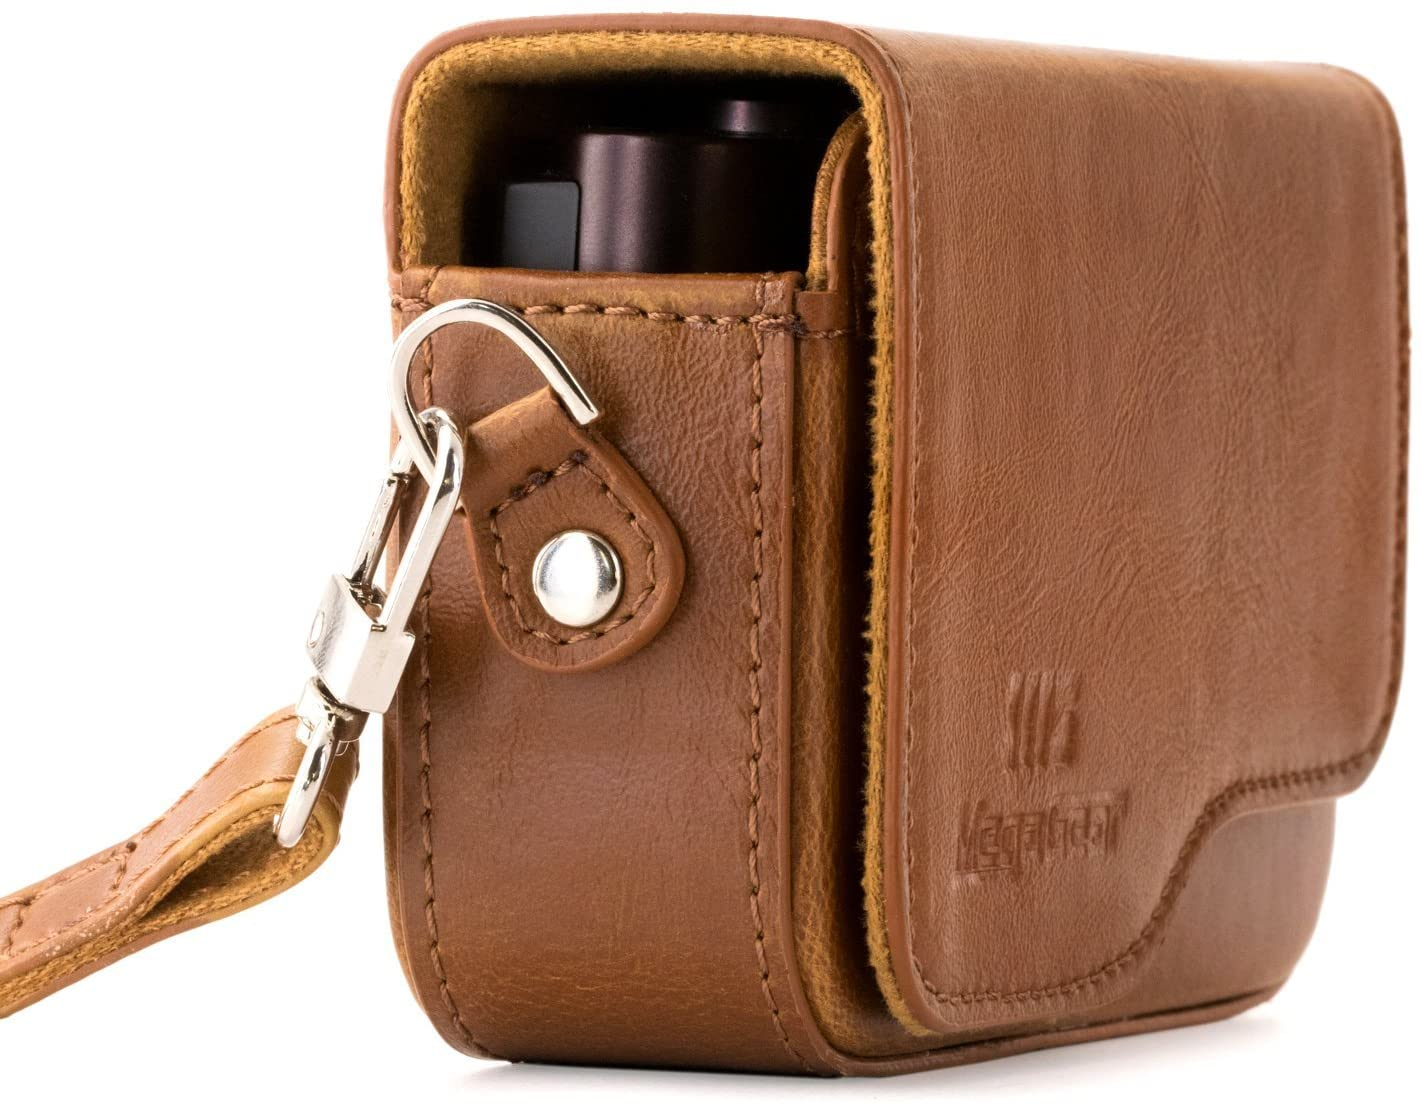 MegaGear Leather Camera Case with Strap Compatible with Leica C Typ 112